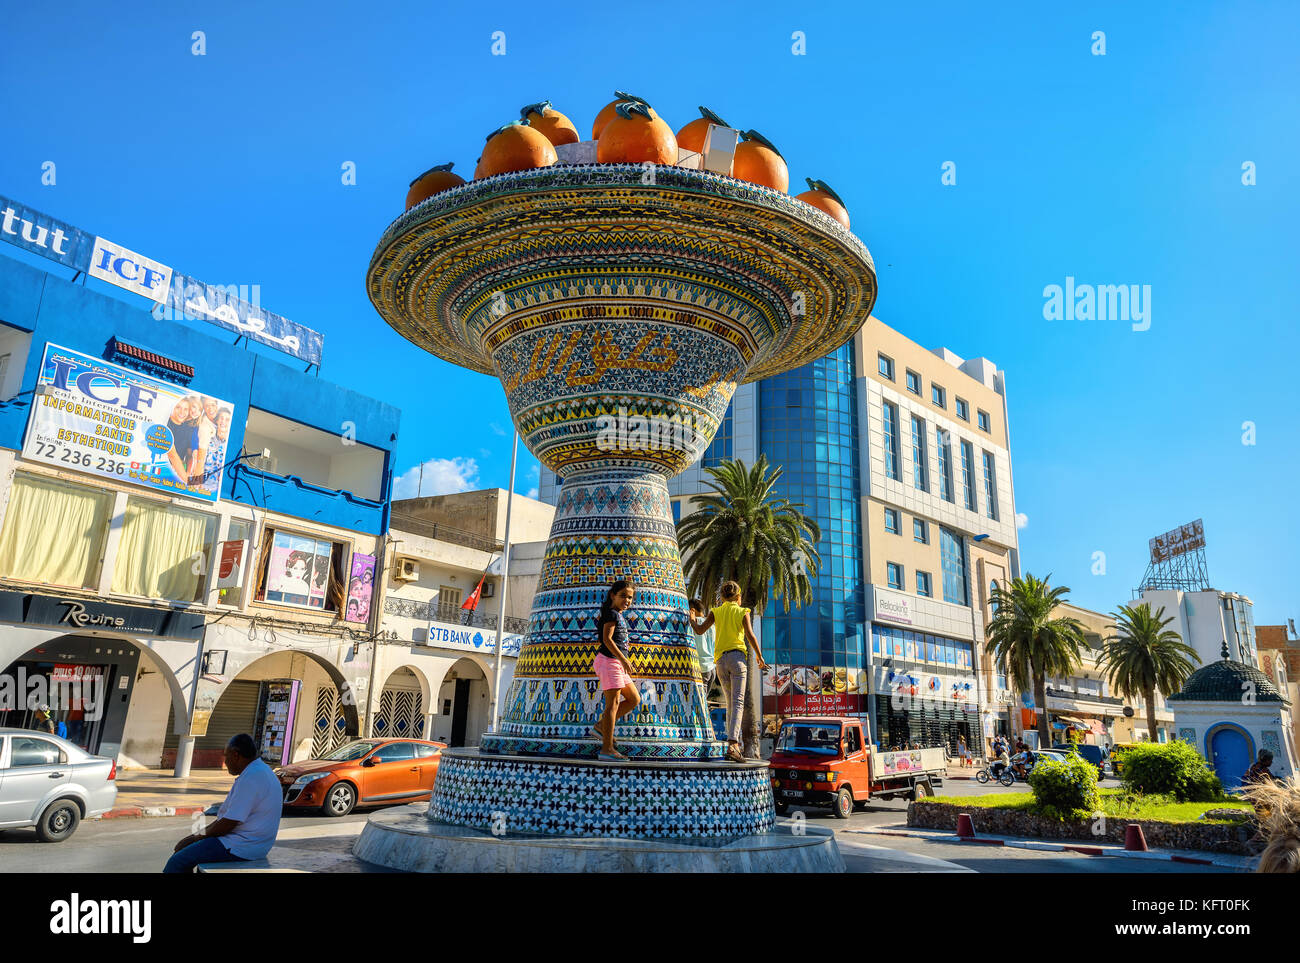 Cityscape with ceramic sculpture on road in city centre. Nabeul, Tunisia, North Africa Stock Photo